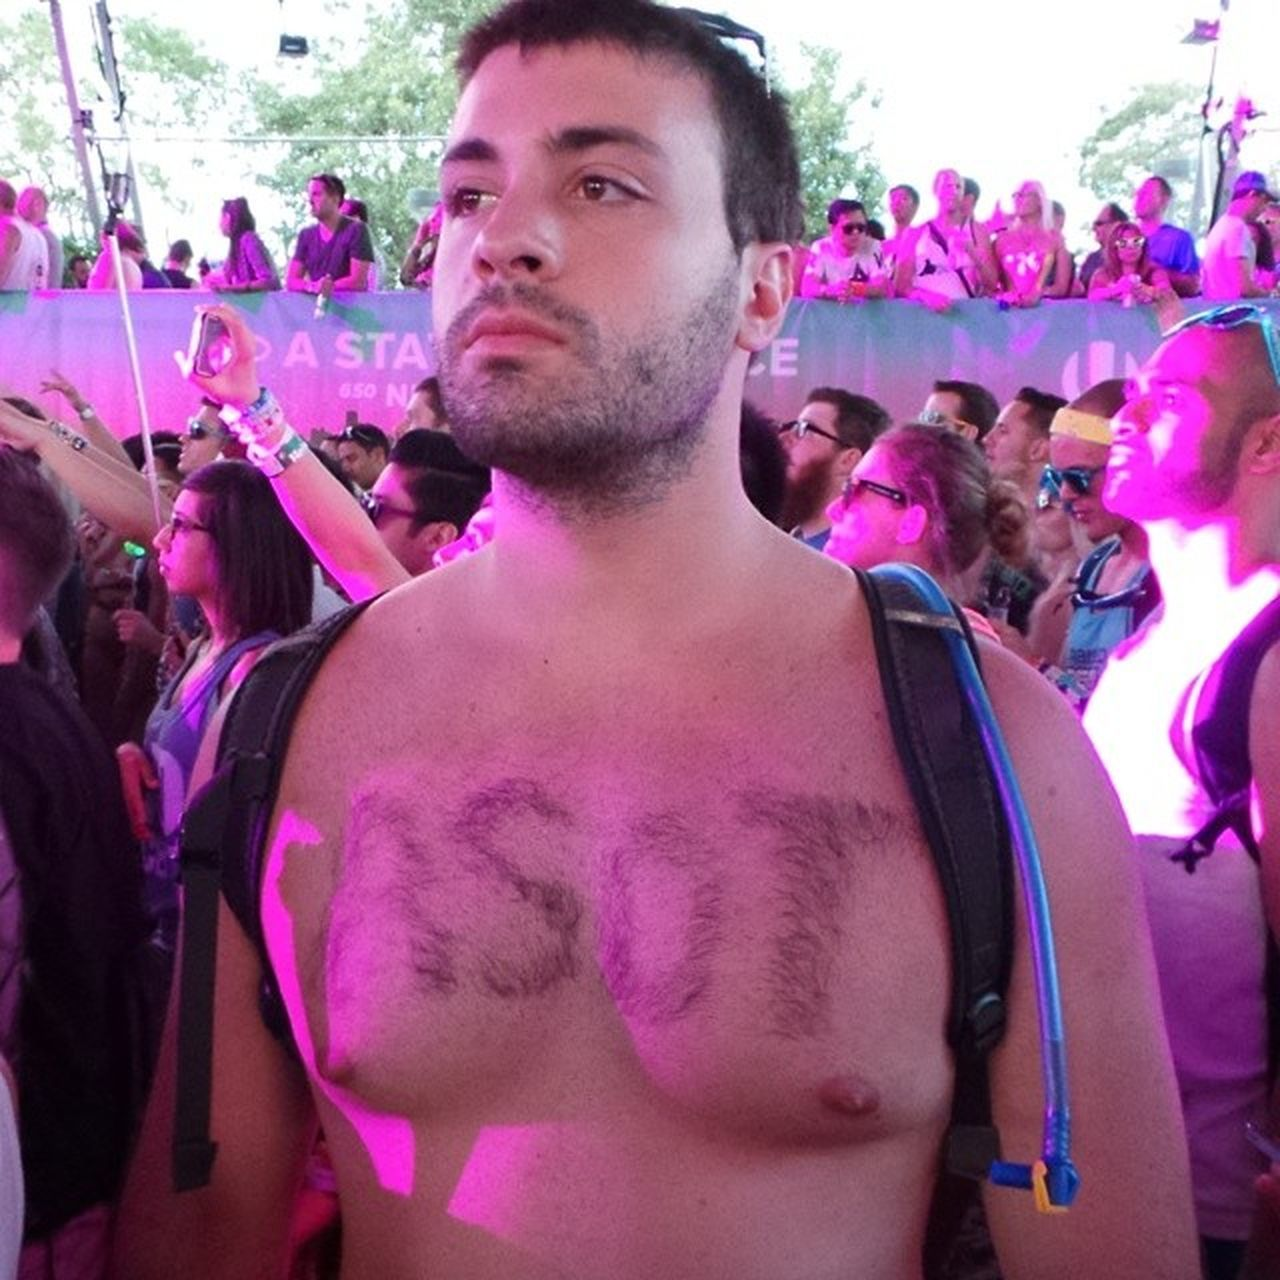 I've heard of a HairTattoo but an ASOT650US CHEST HAIR Tattoo ??? Ultra2014 ASOT dedication!